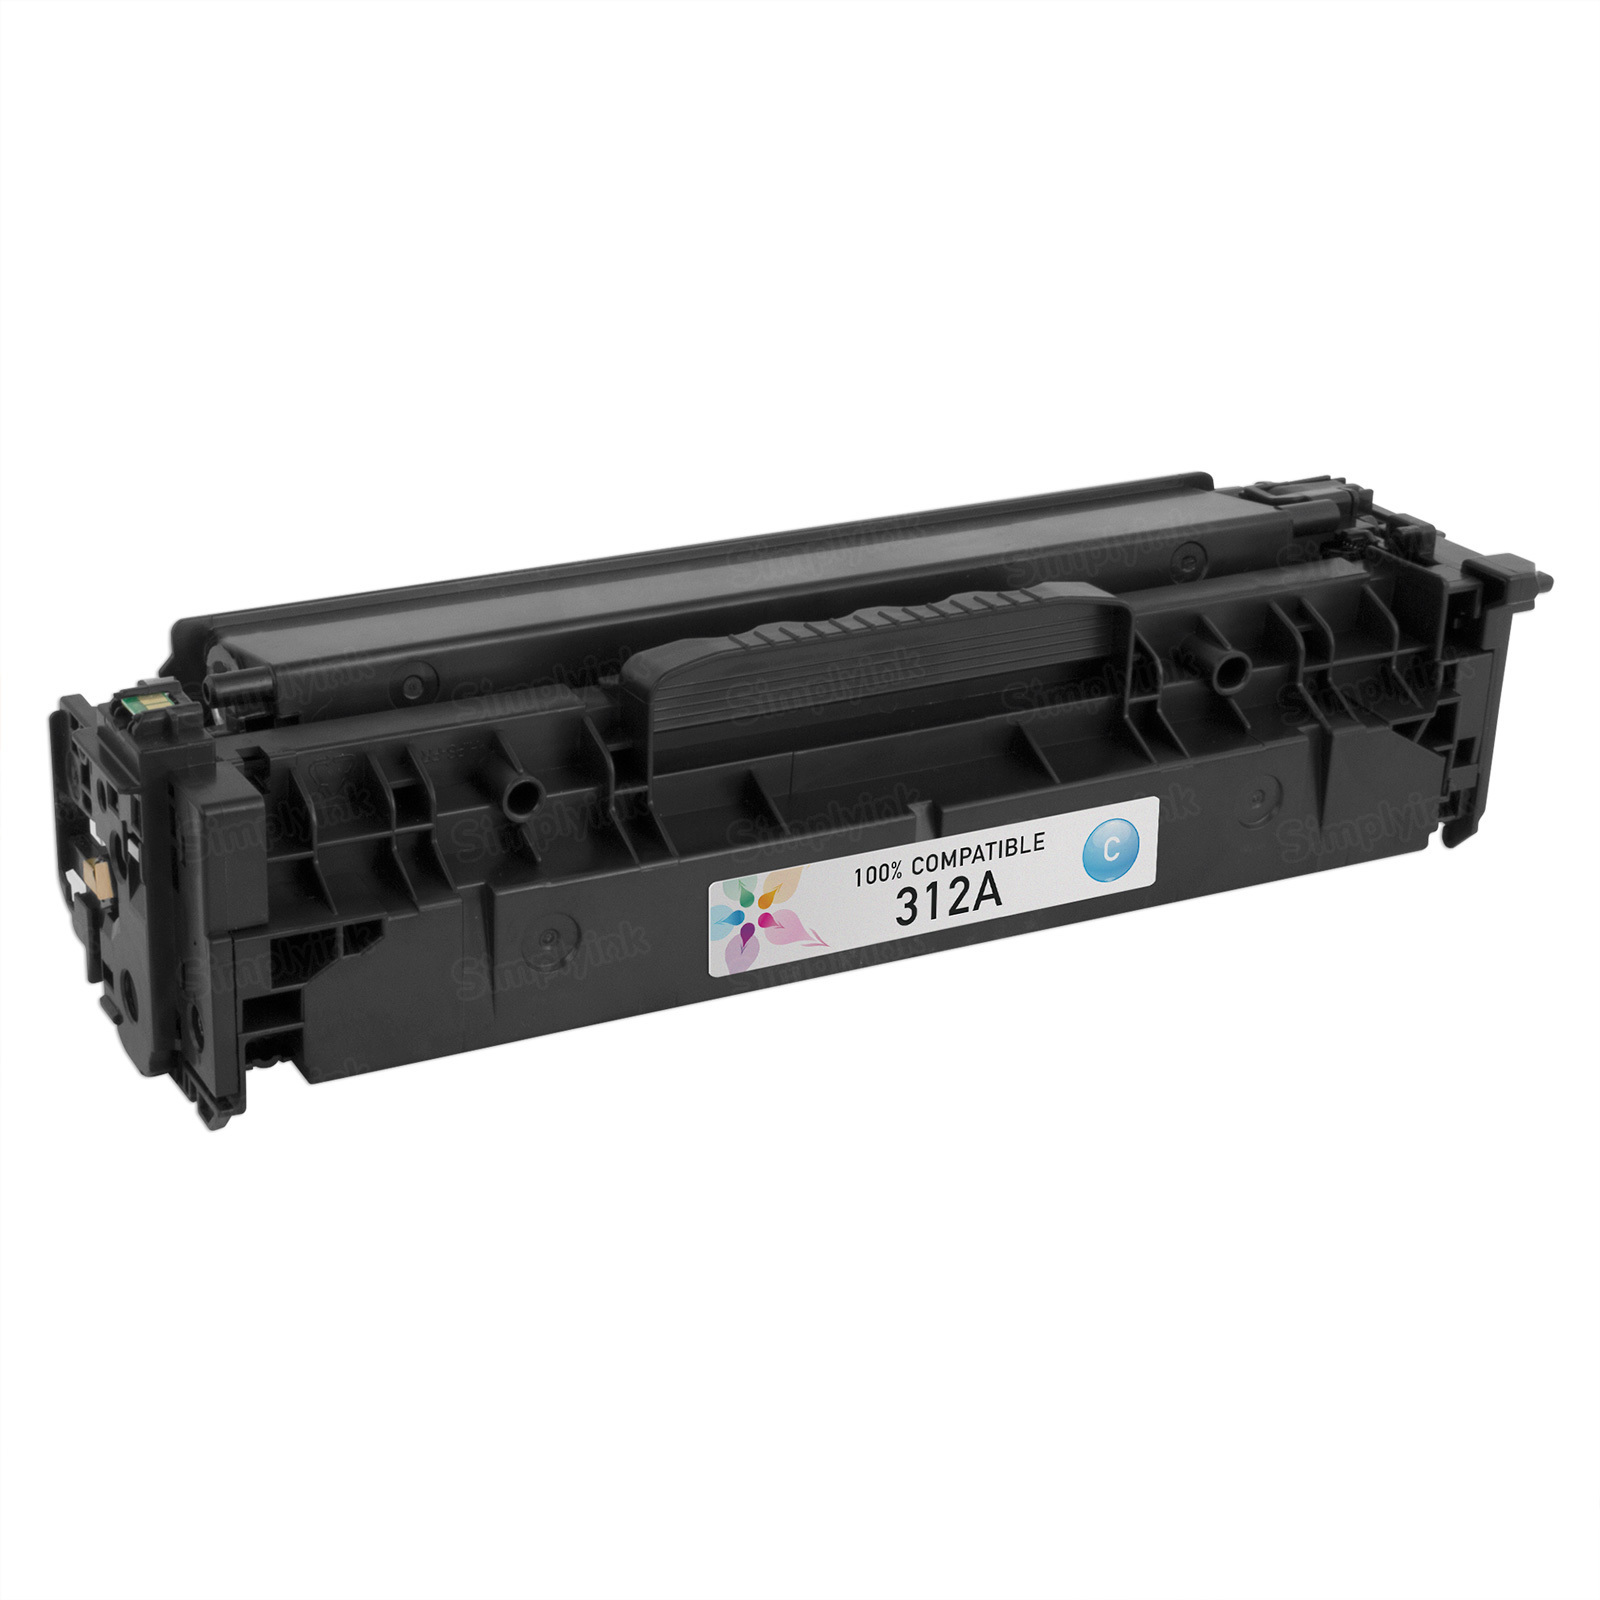 Replacement Cyan Toner for HP 312A